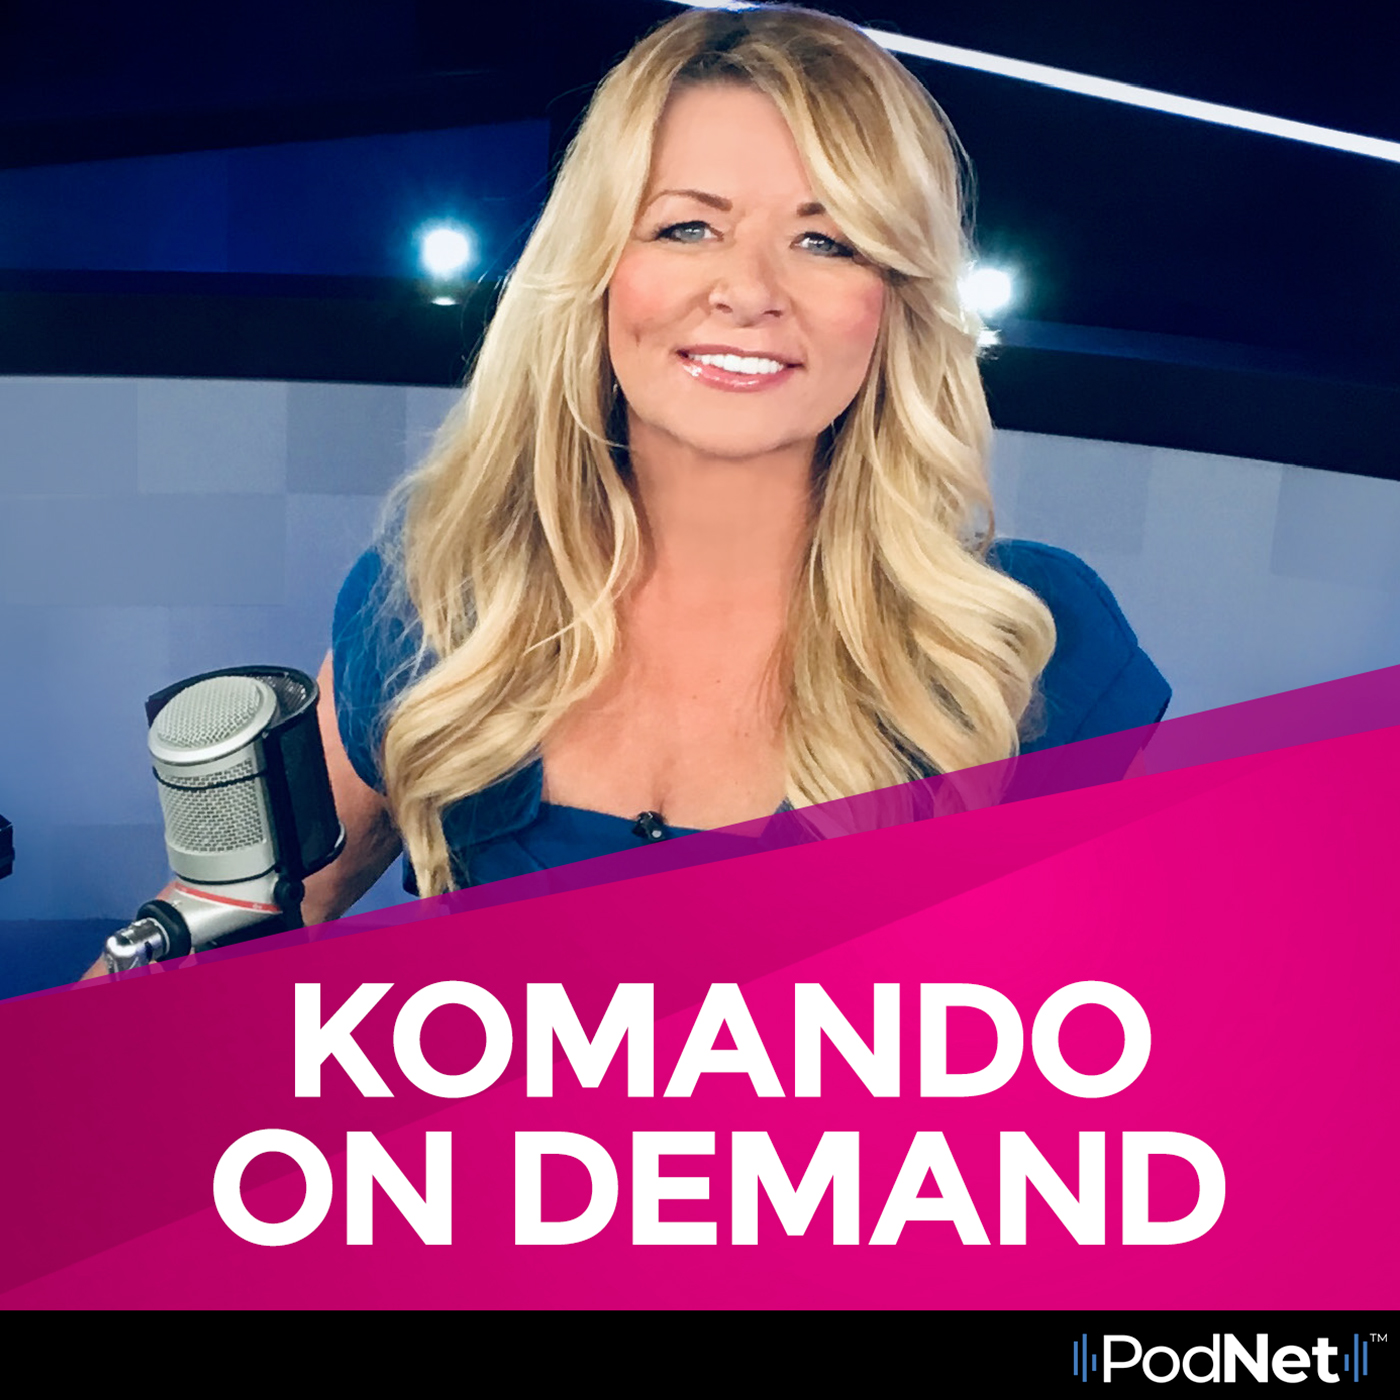 Komando On Demand